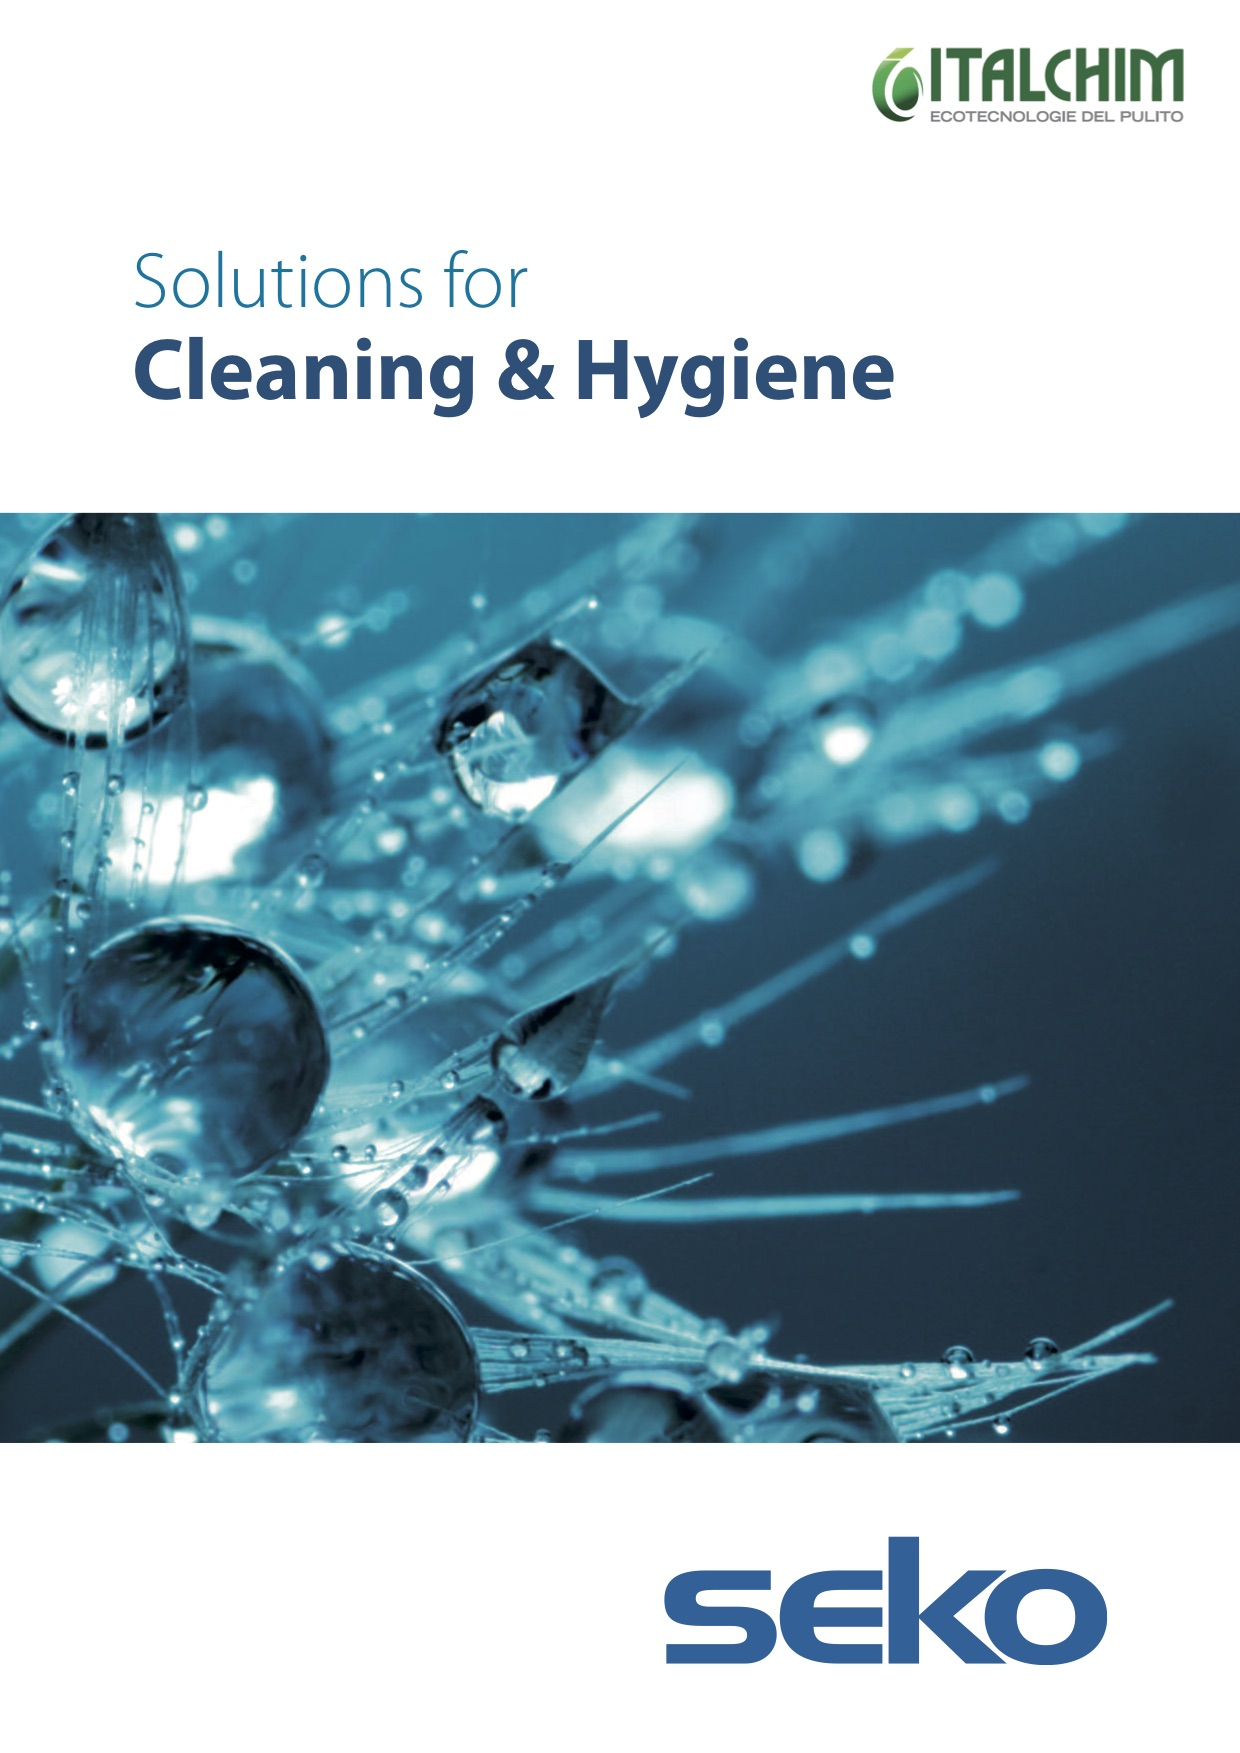 SOLUTIONS FOR CLEANING AND HYGIENE